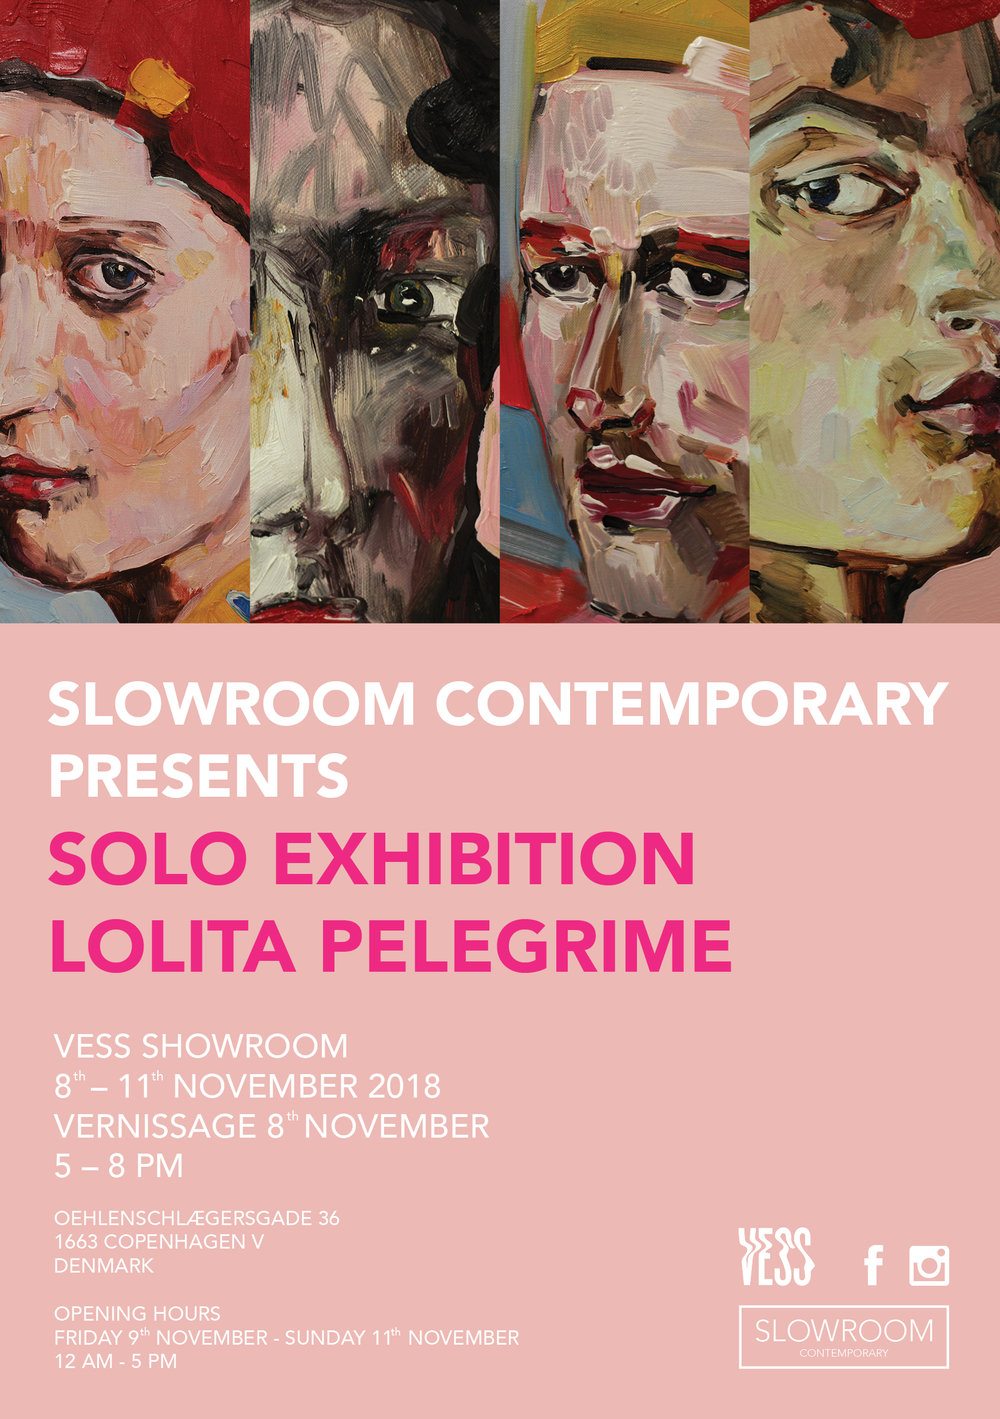 lolita pelegrime / solo exhibition - In collaboration with VESS Showroom we proudly present the debut solo exhibition with Lithuanian artist, Lolita Pelegrime.For more information go to the Facebook event here.